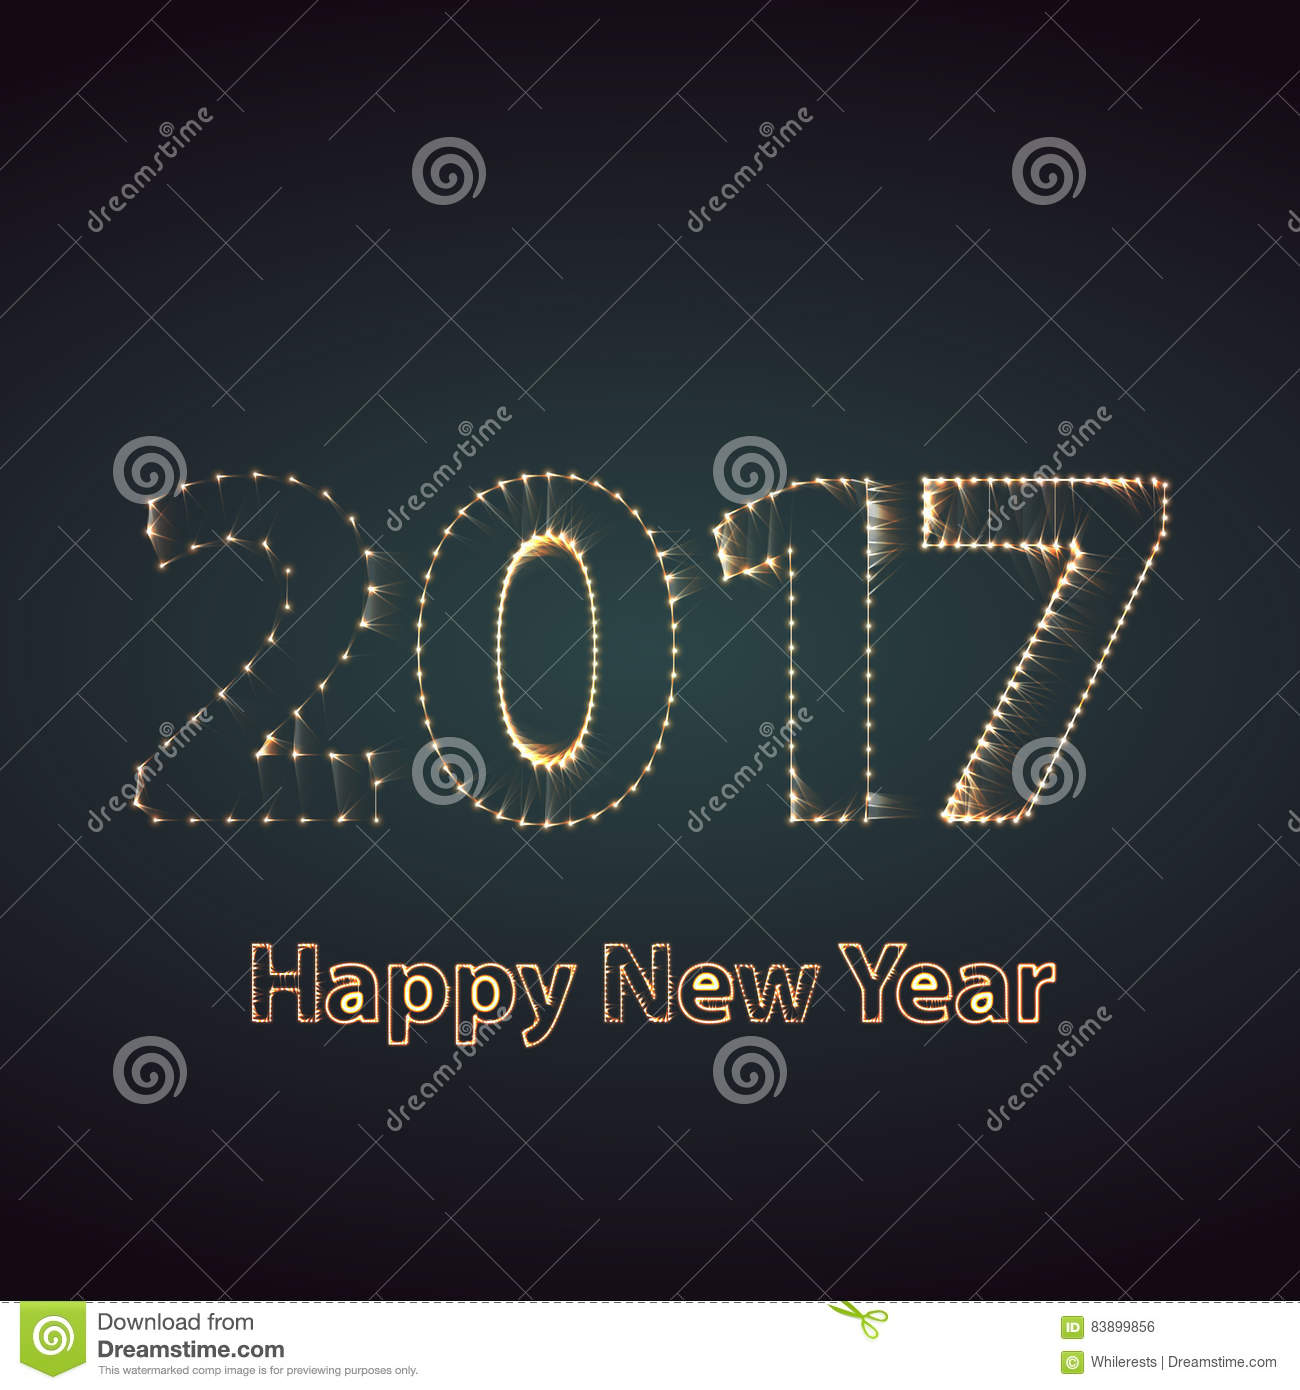 download happy new year 2017 firework background greeting card with particle illustration stock illustration